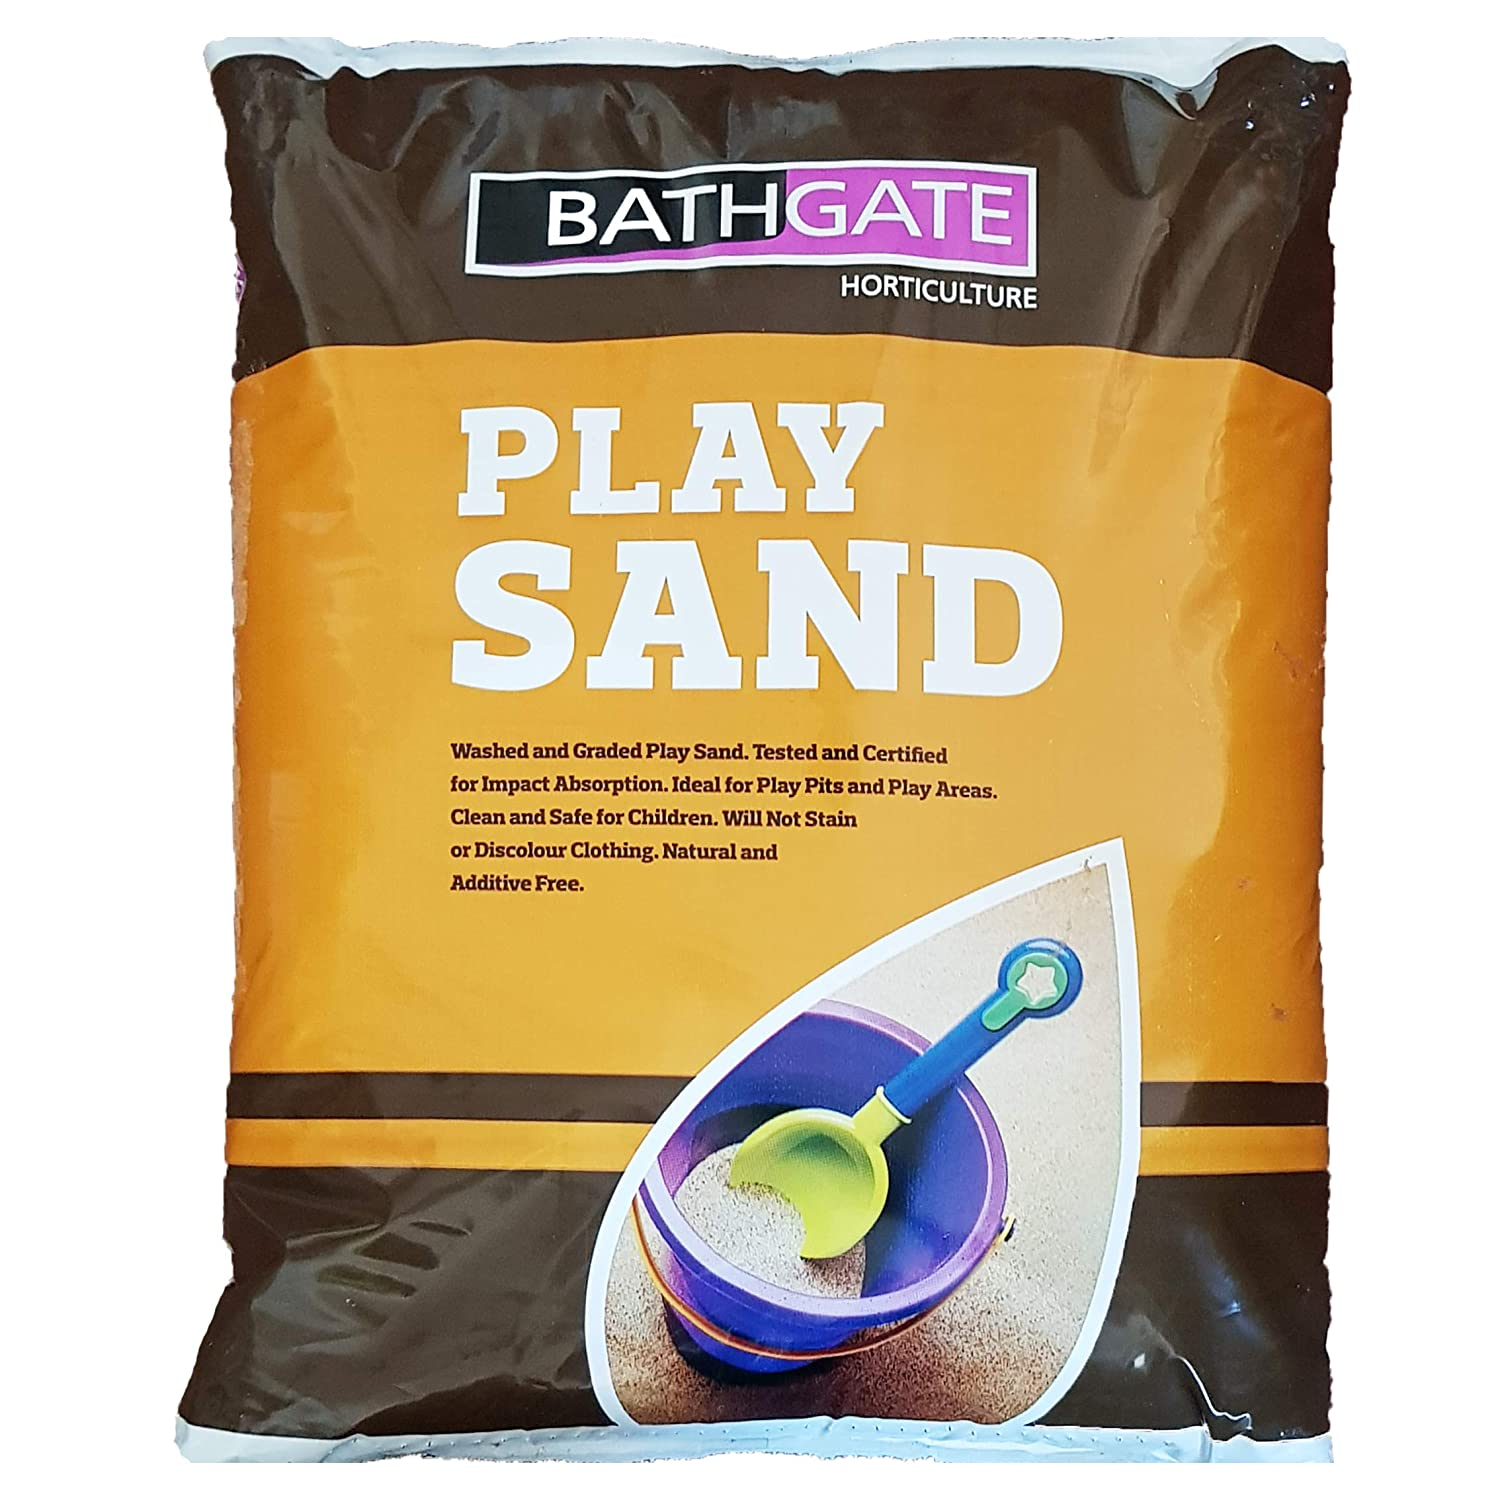 Clean graded sand Non staining Non toxic Childrens Play Sand 25KG BAG For kids play sand pits